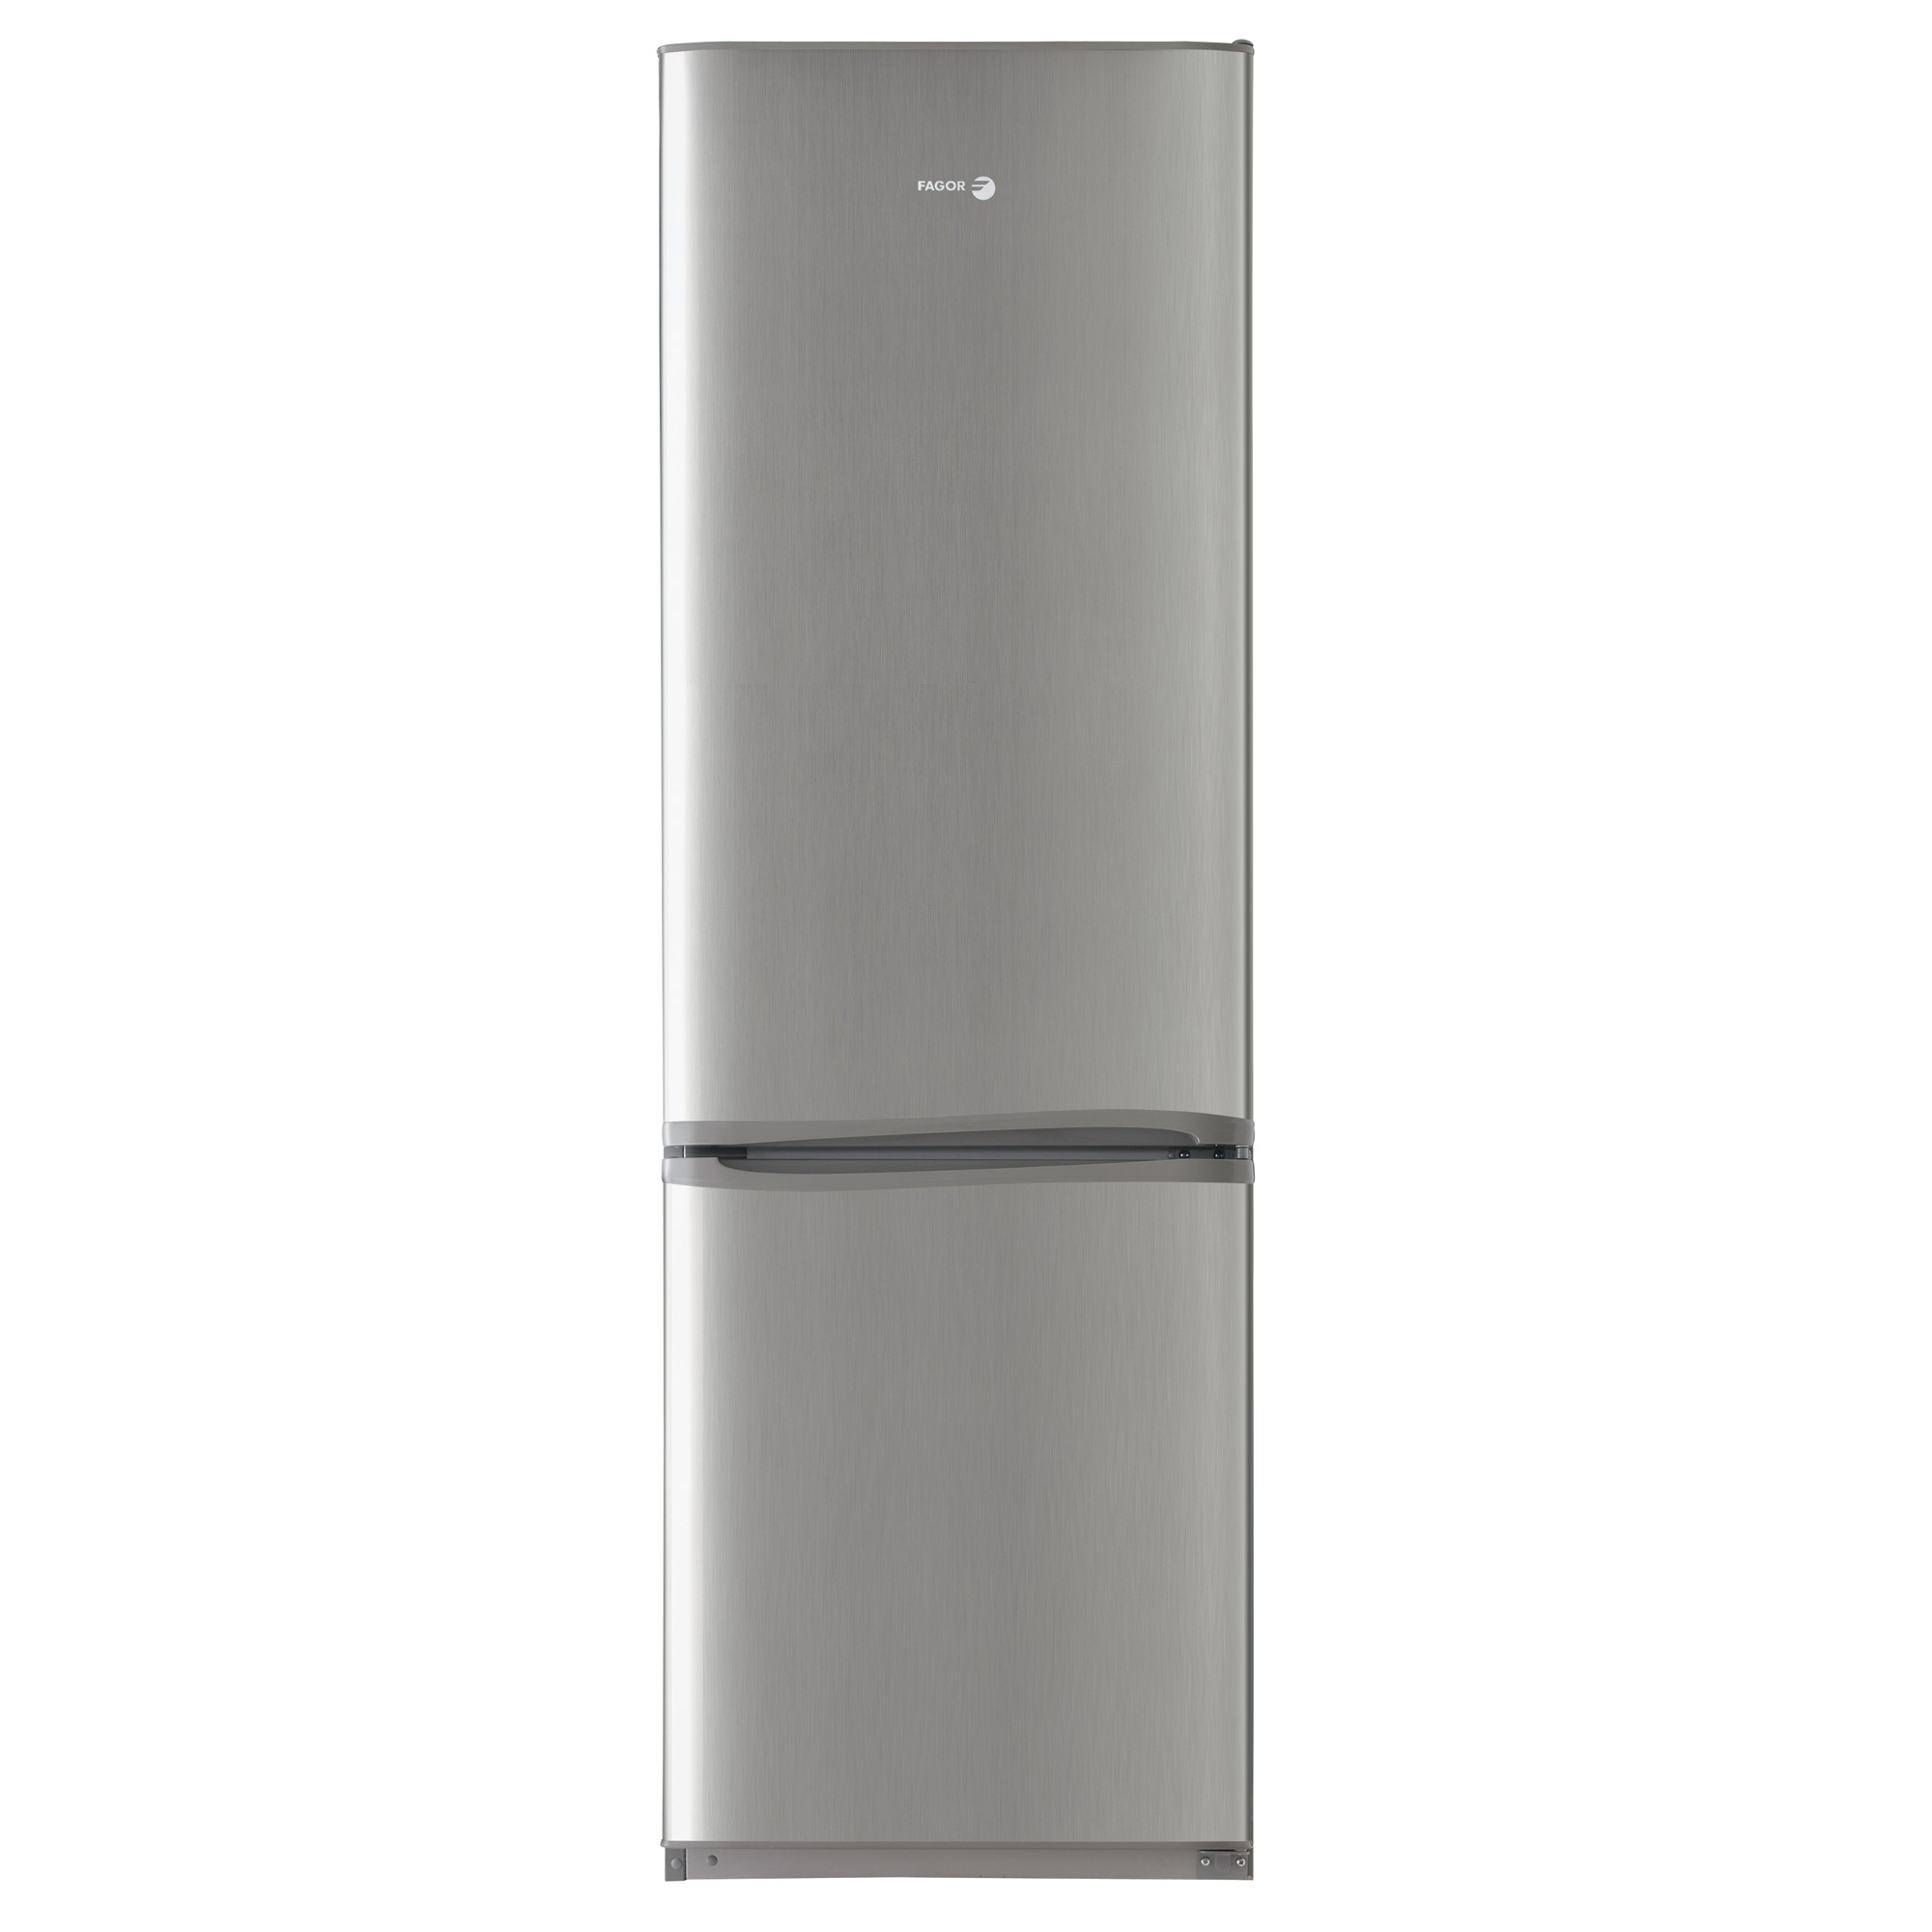 bosch series 6 dishwasher super silence manual